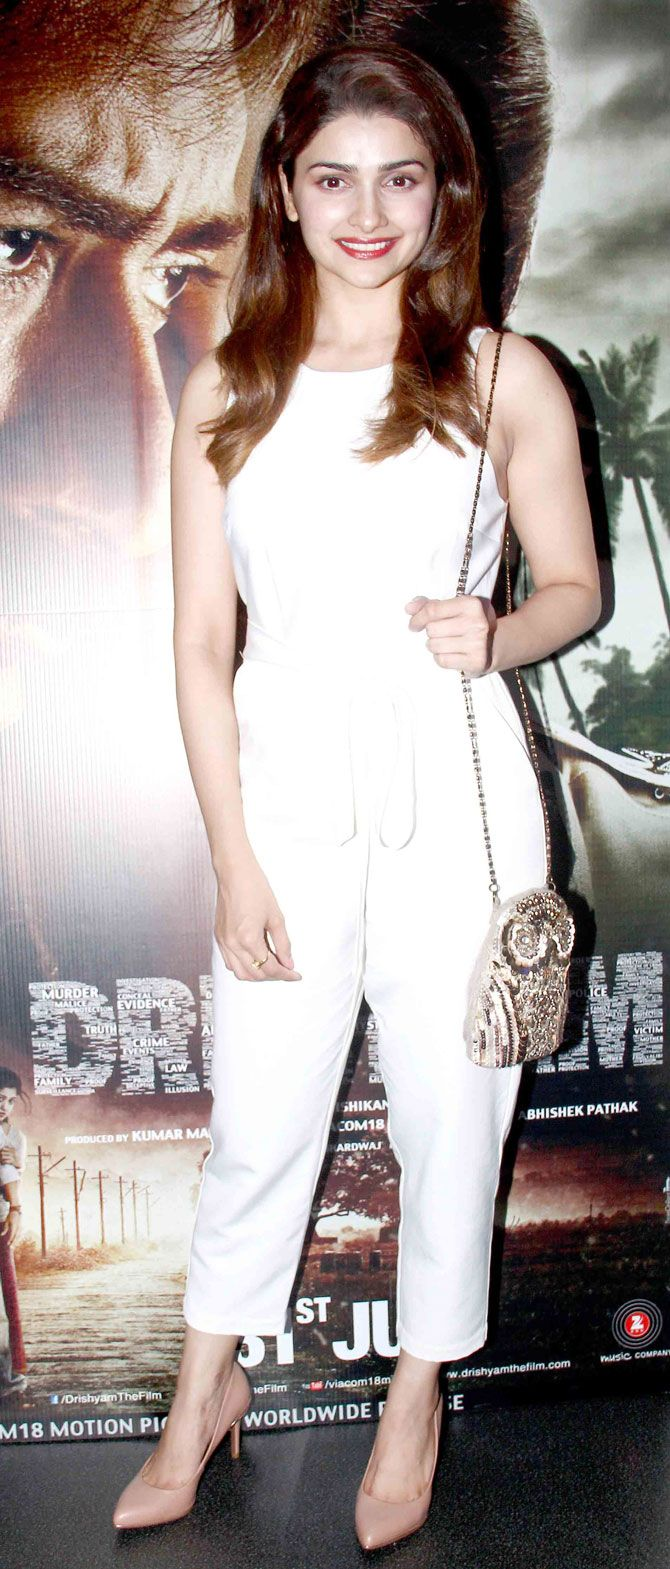 Prachi Desai at #Drishyam screening. #Bollywood #Fashion #Style #Beauty